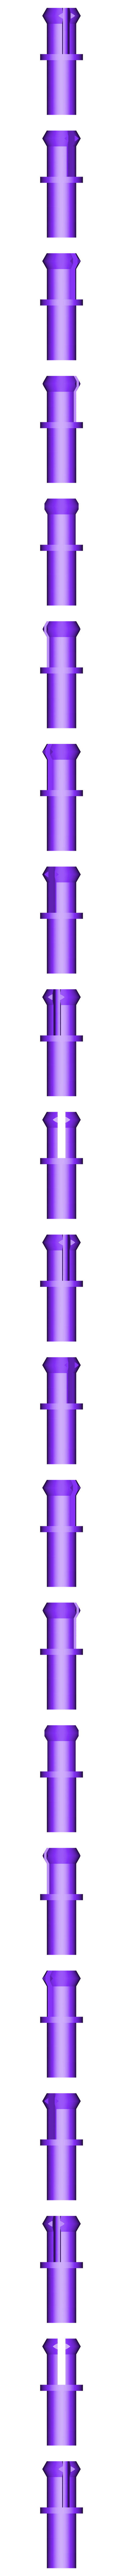 Connector.stl Download free STL file Differential Gears • Object to 3D print, morrisblue